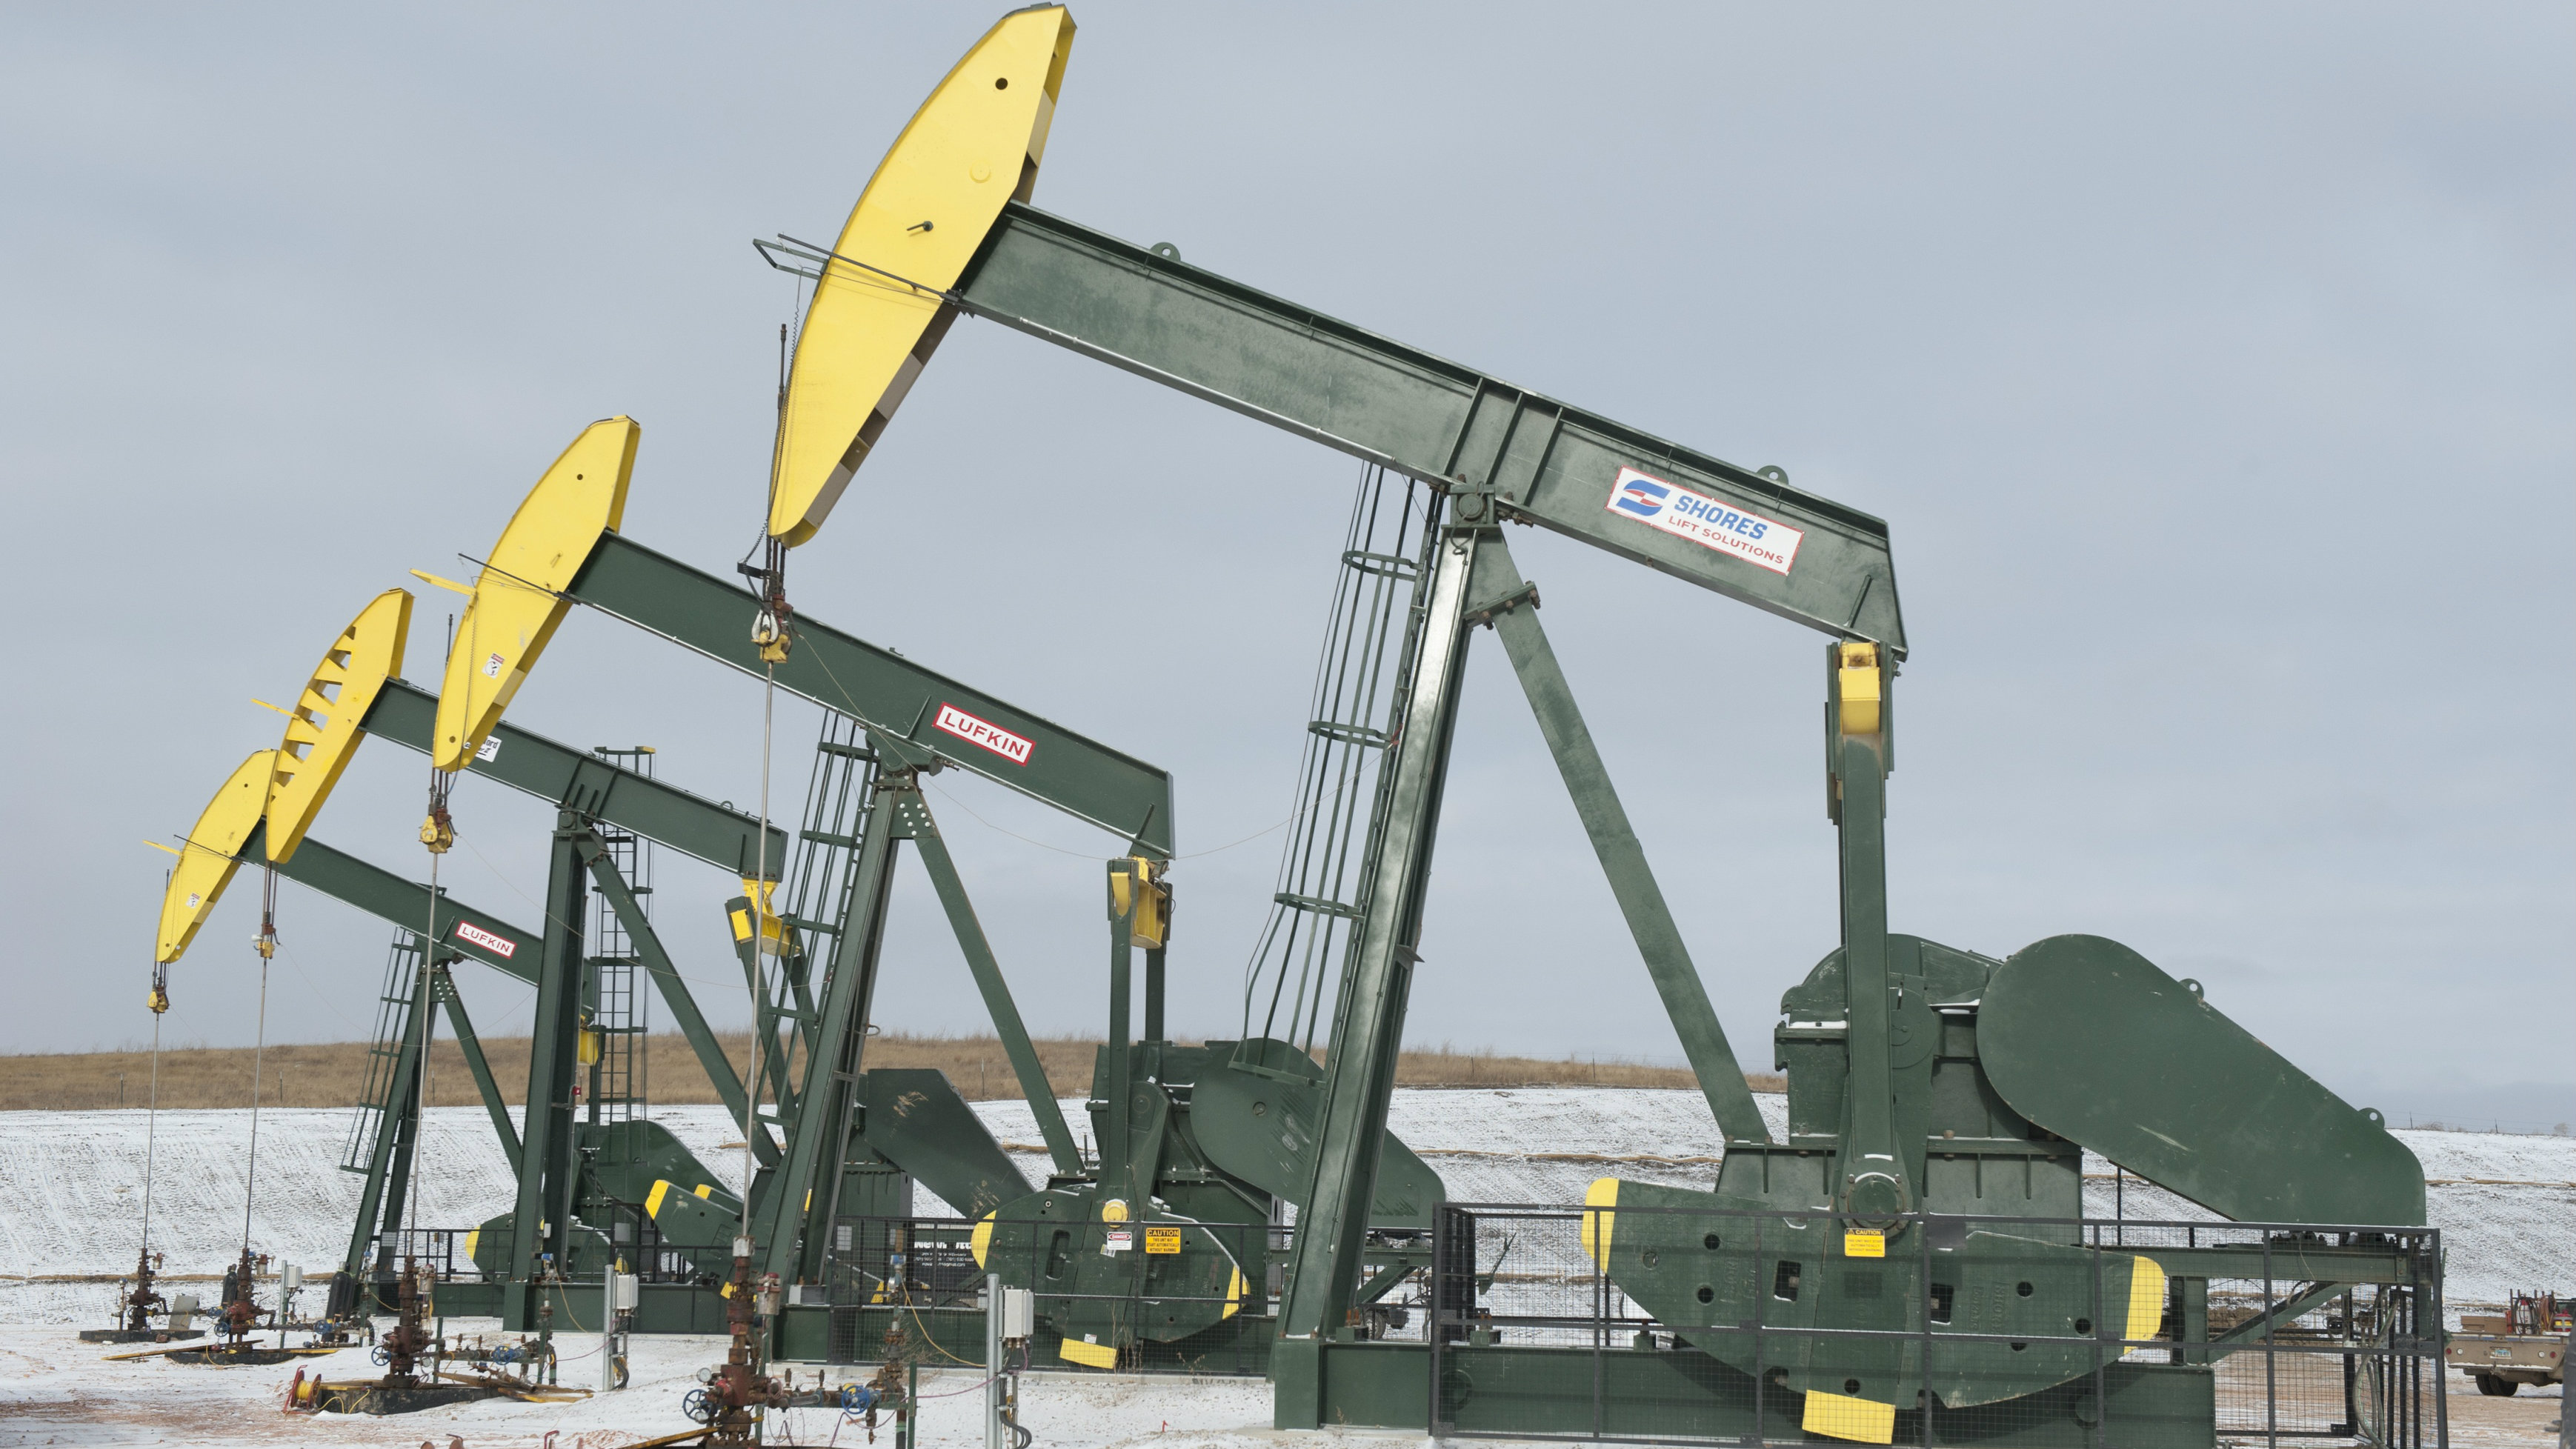 Pumpjacks taken out of production temporarily stand idle at a Hess site while new wells are fracked near Williston, North Dakota November 12, 2014.